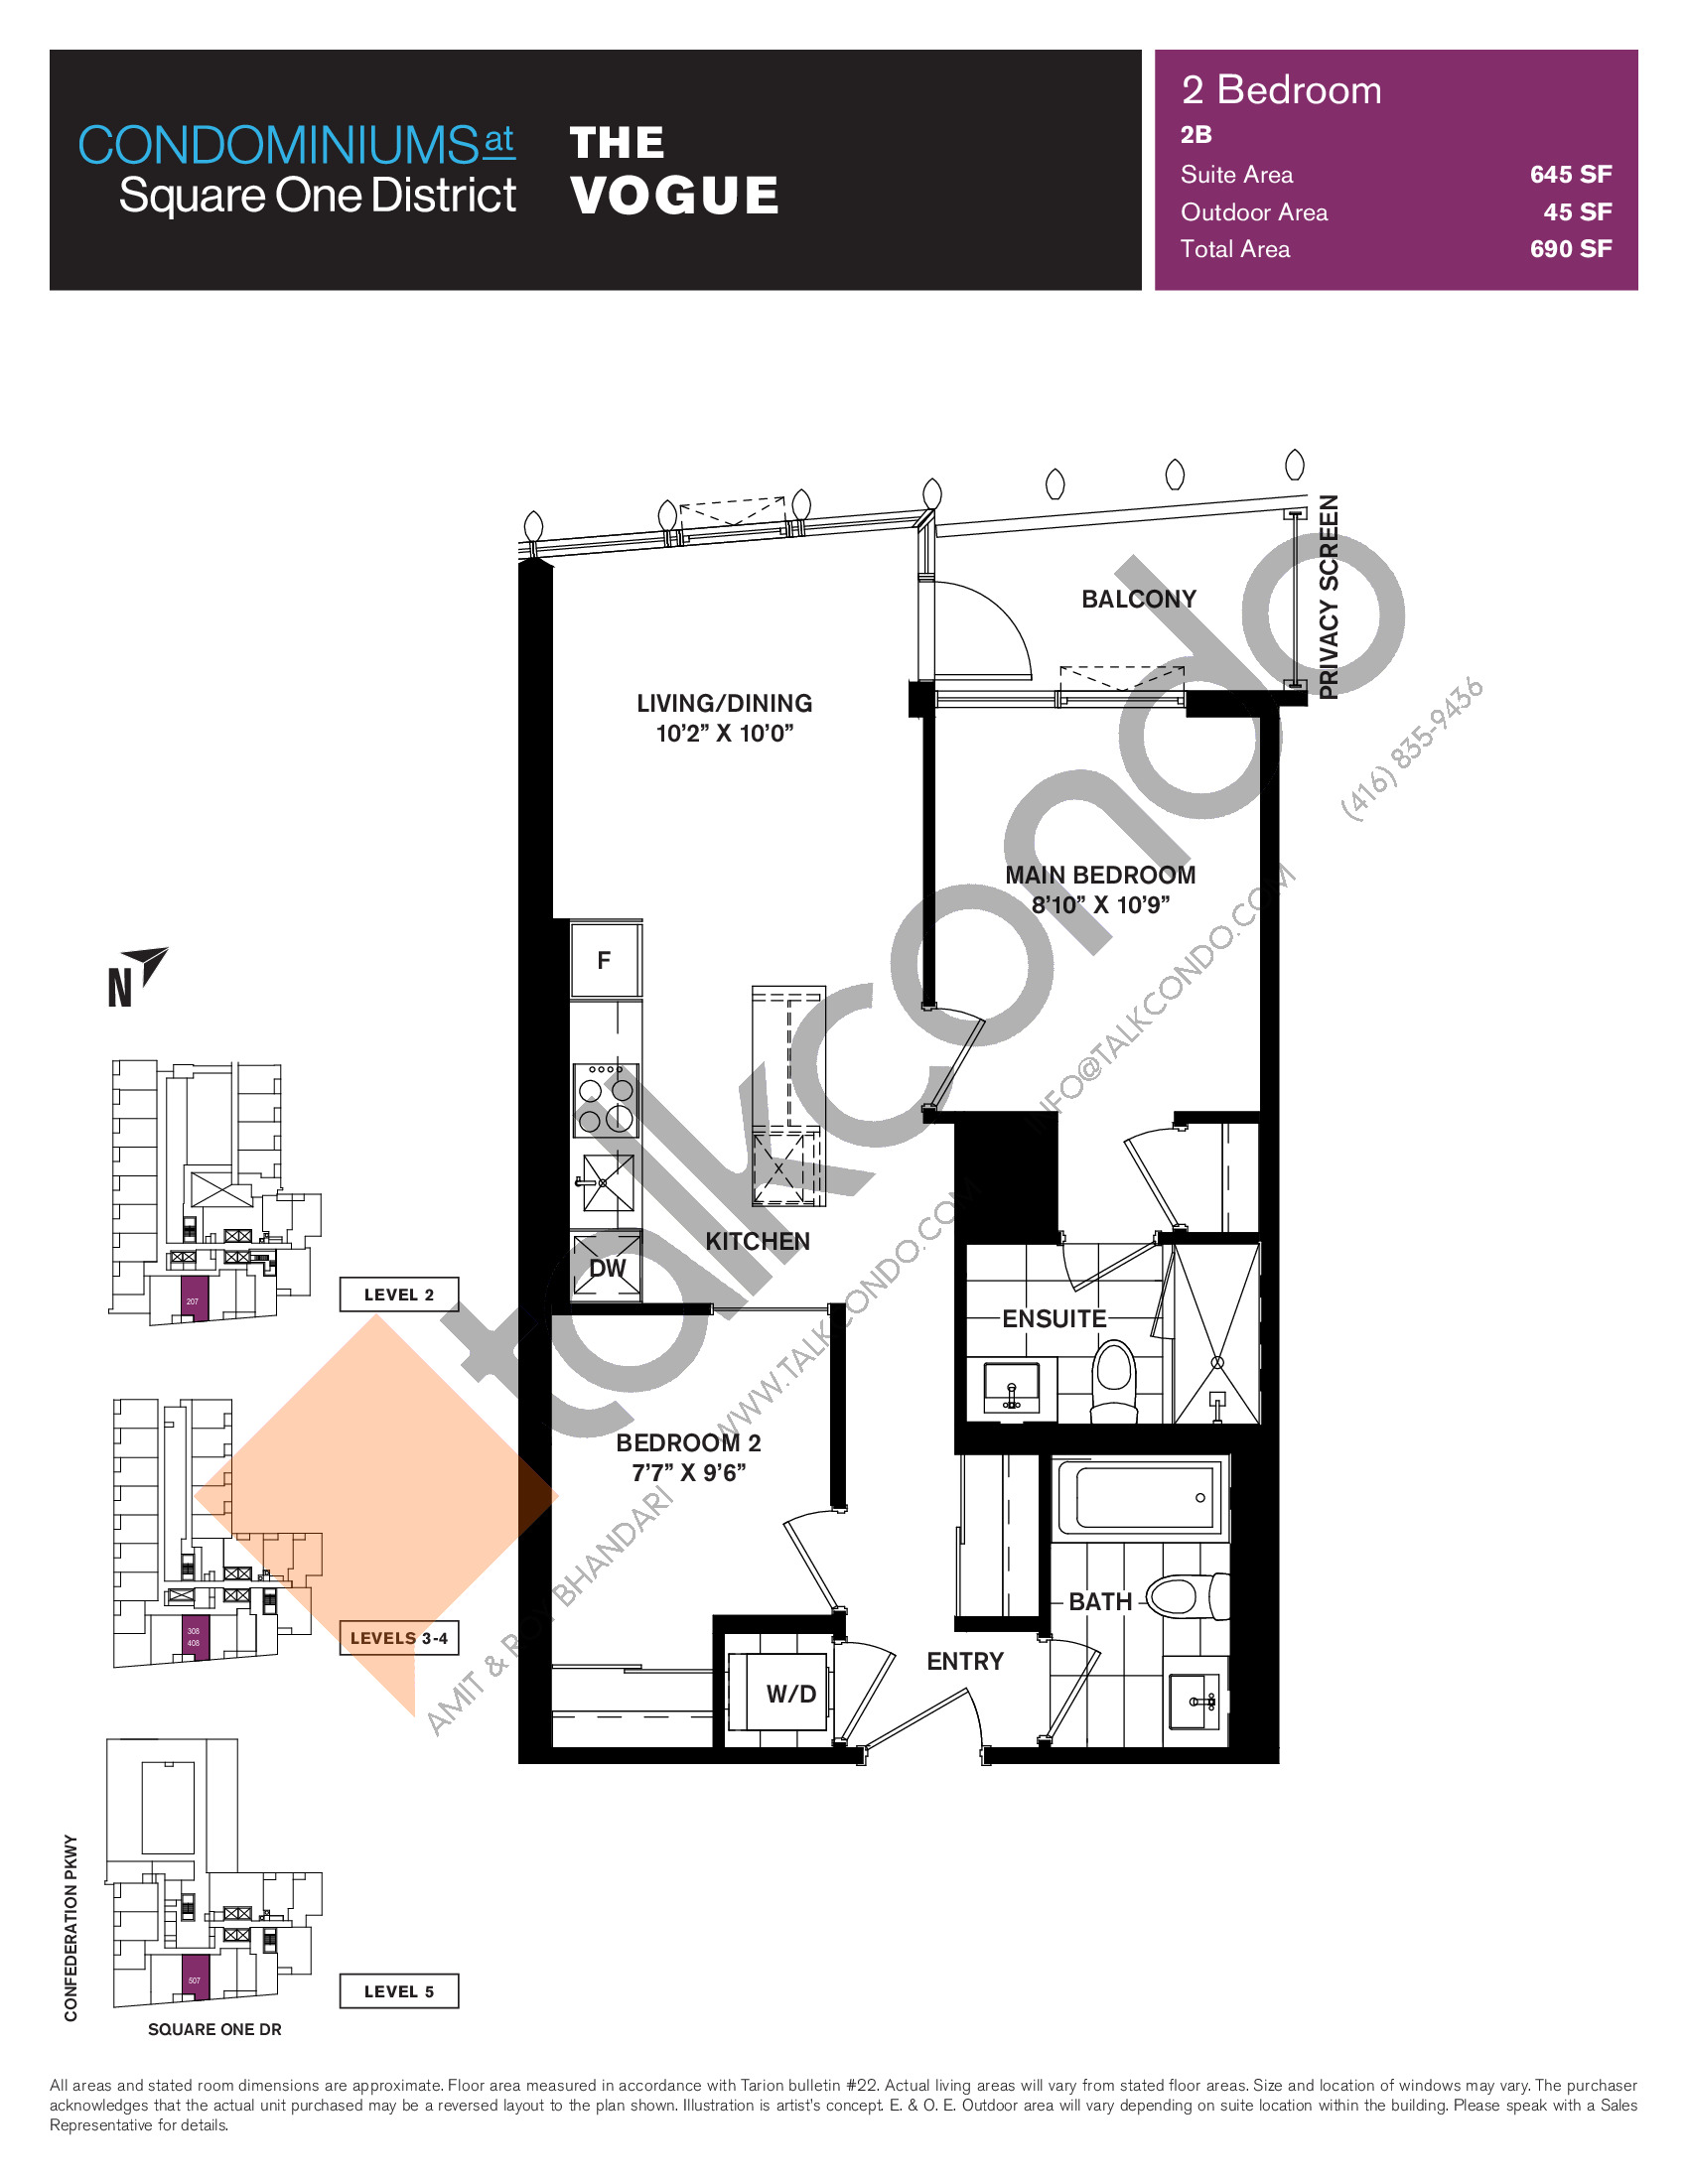 The Vogue Floor Plan at Condominiums at Square One District - 645 sq.ft